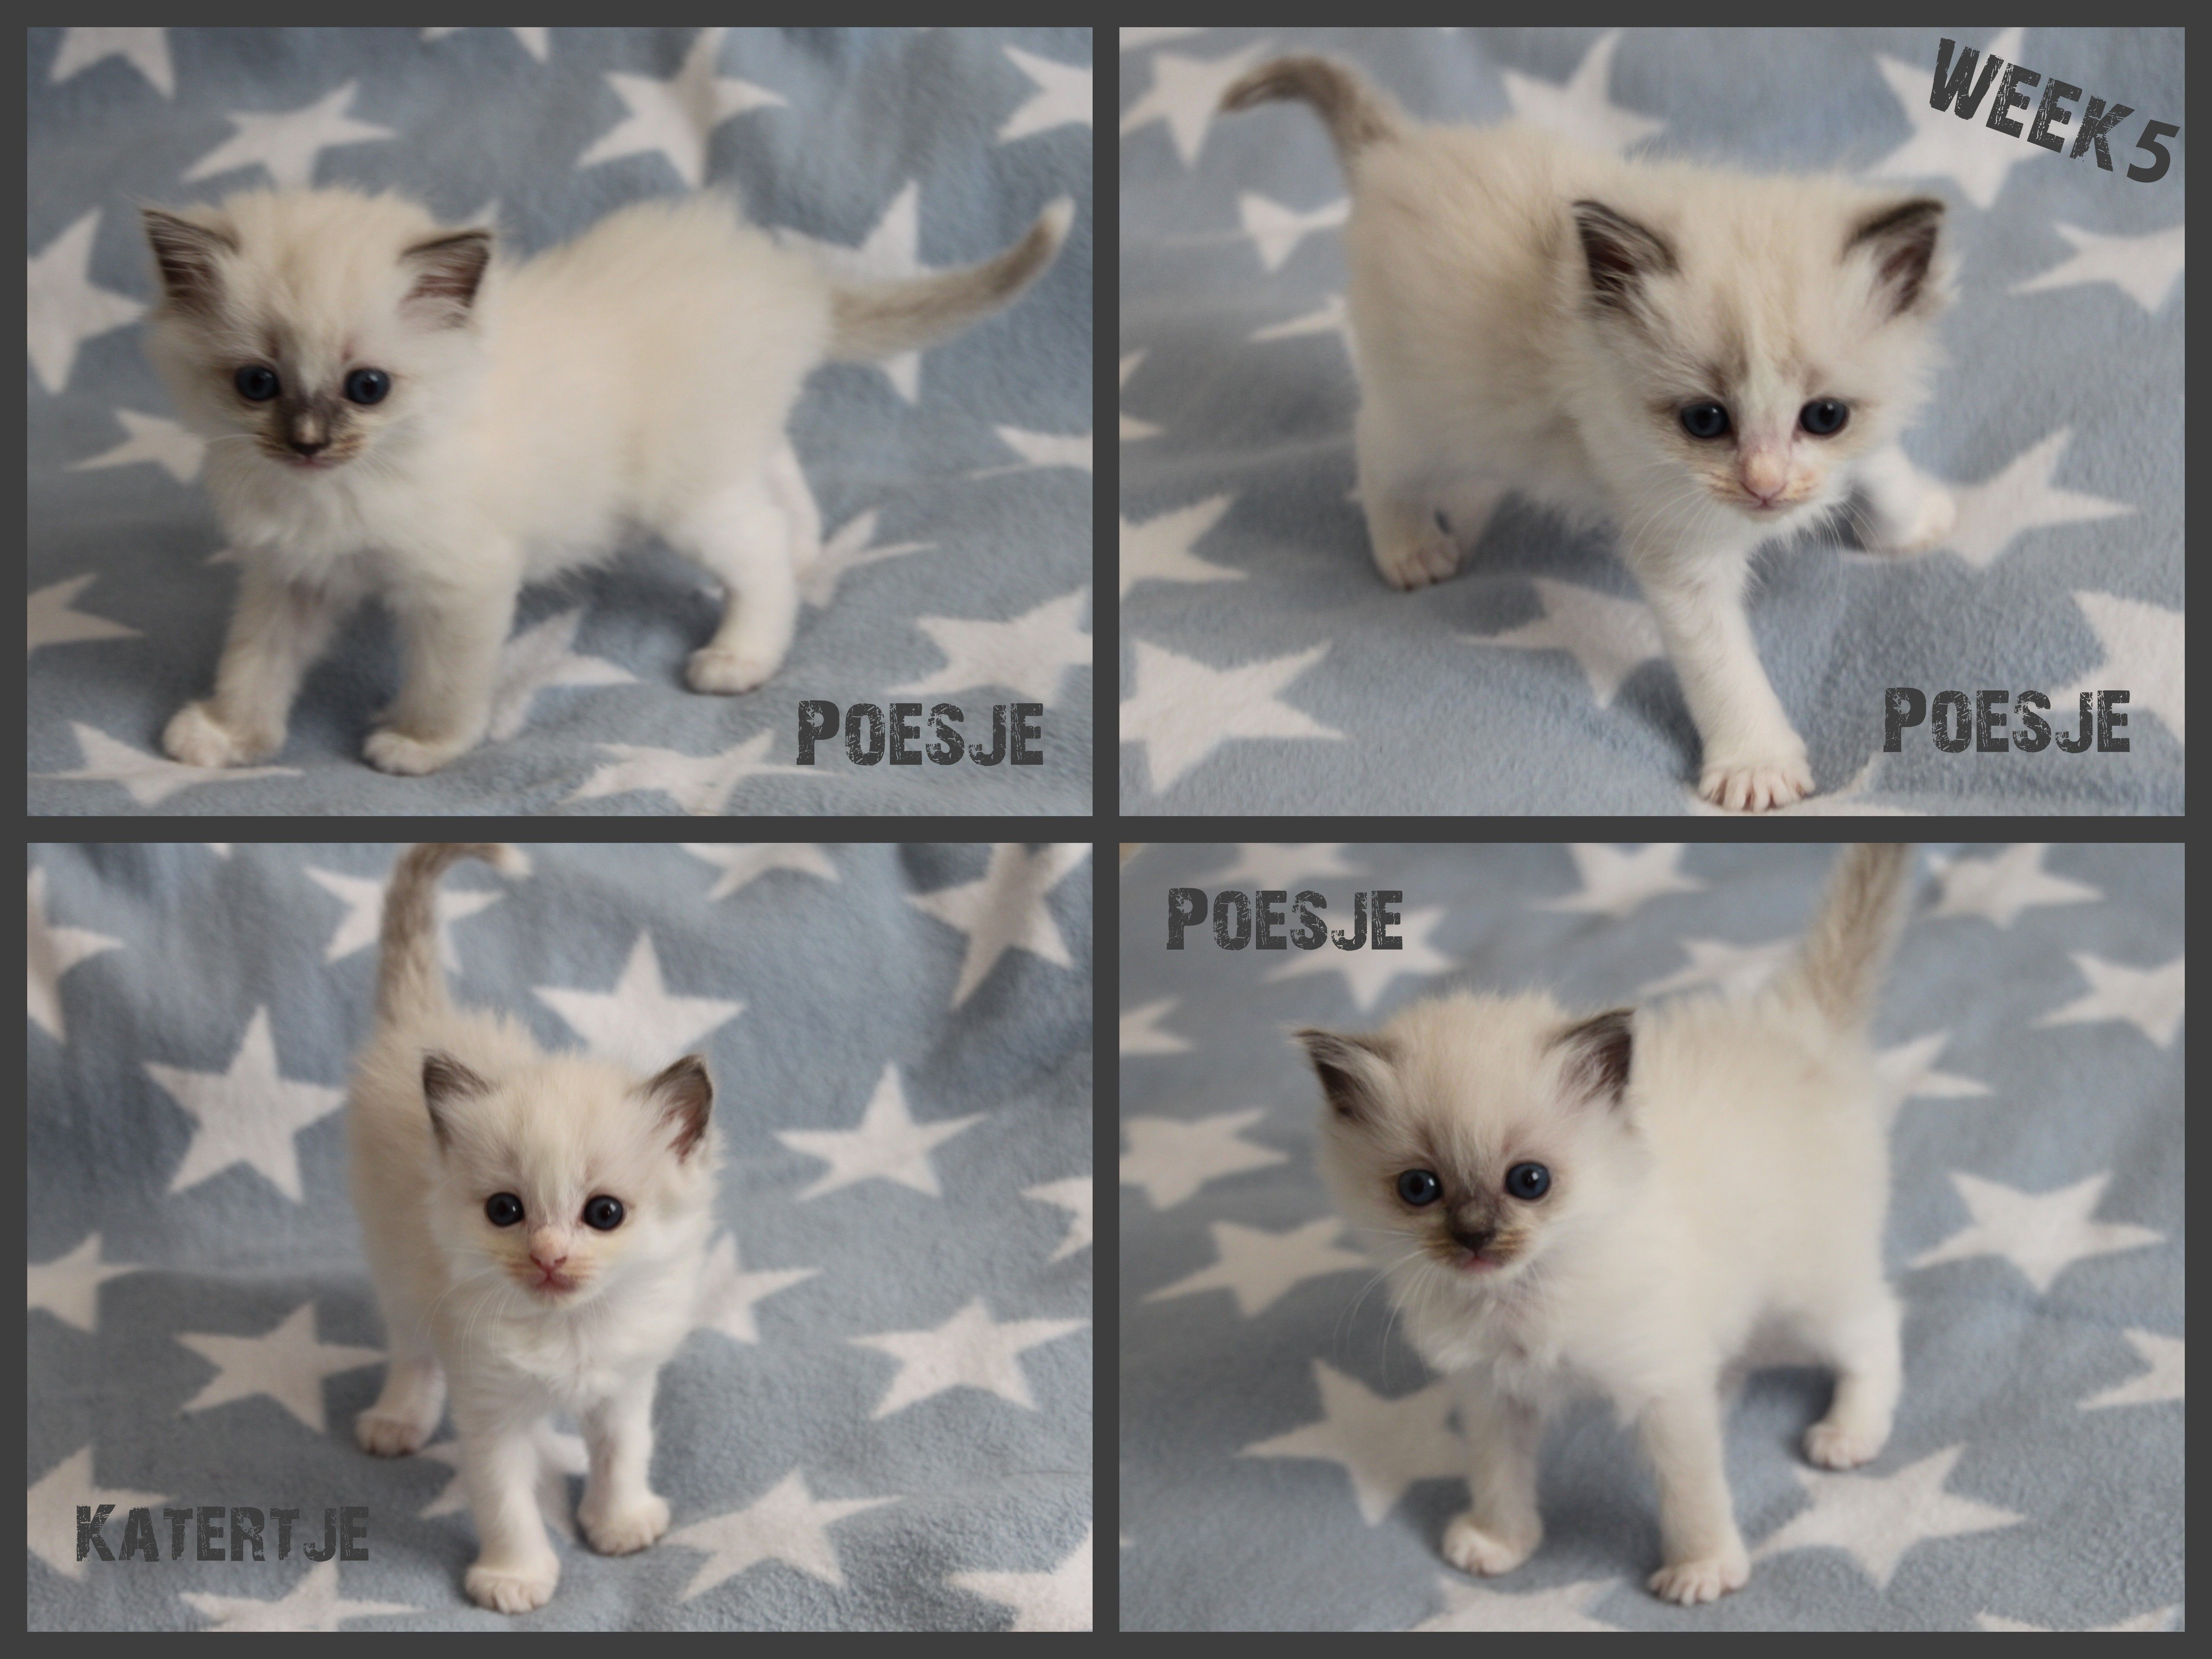 Ragdoll Kittens 5 Weeks Old For More Information Go To Www Ribbonsragdolls Com Awww Precious Kittens Cats Animals